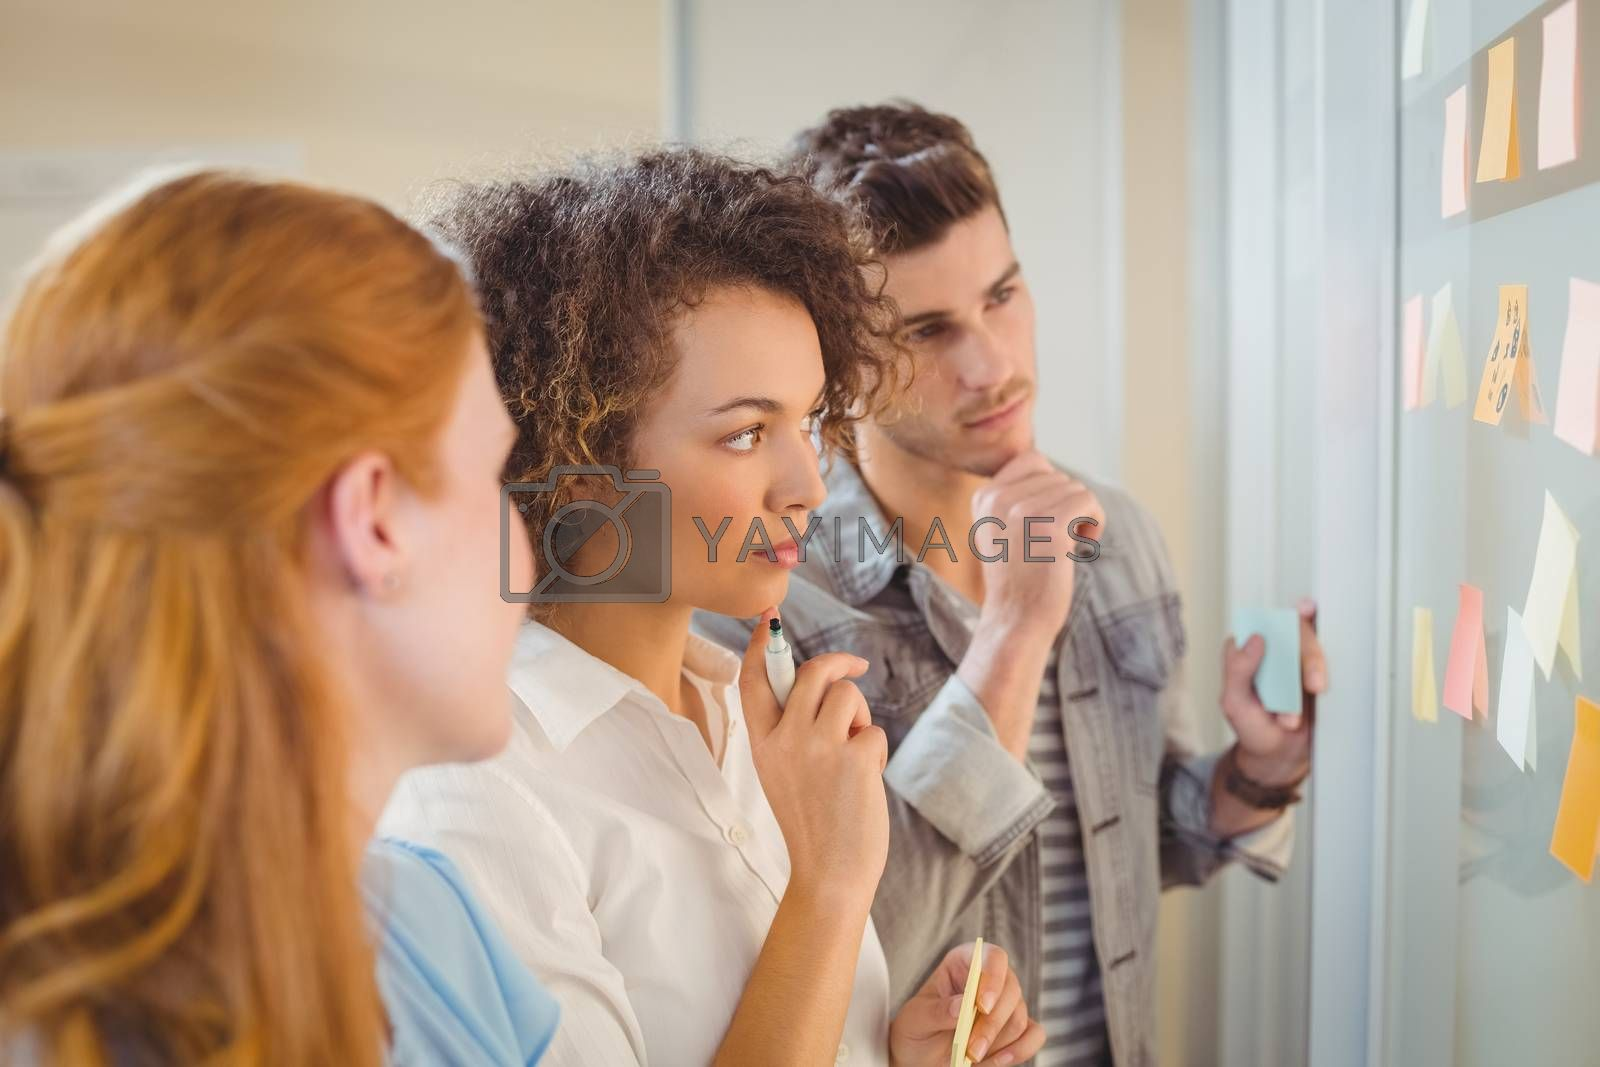 Thoughtful business poeple looking at adhesive notes on glass wall during meeting in office